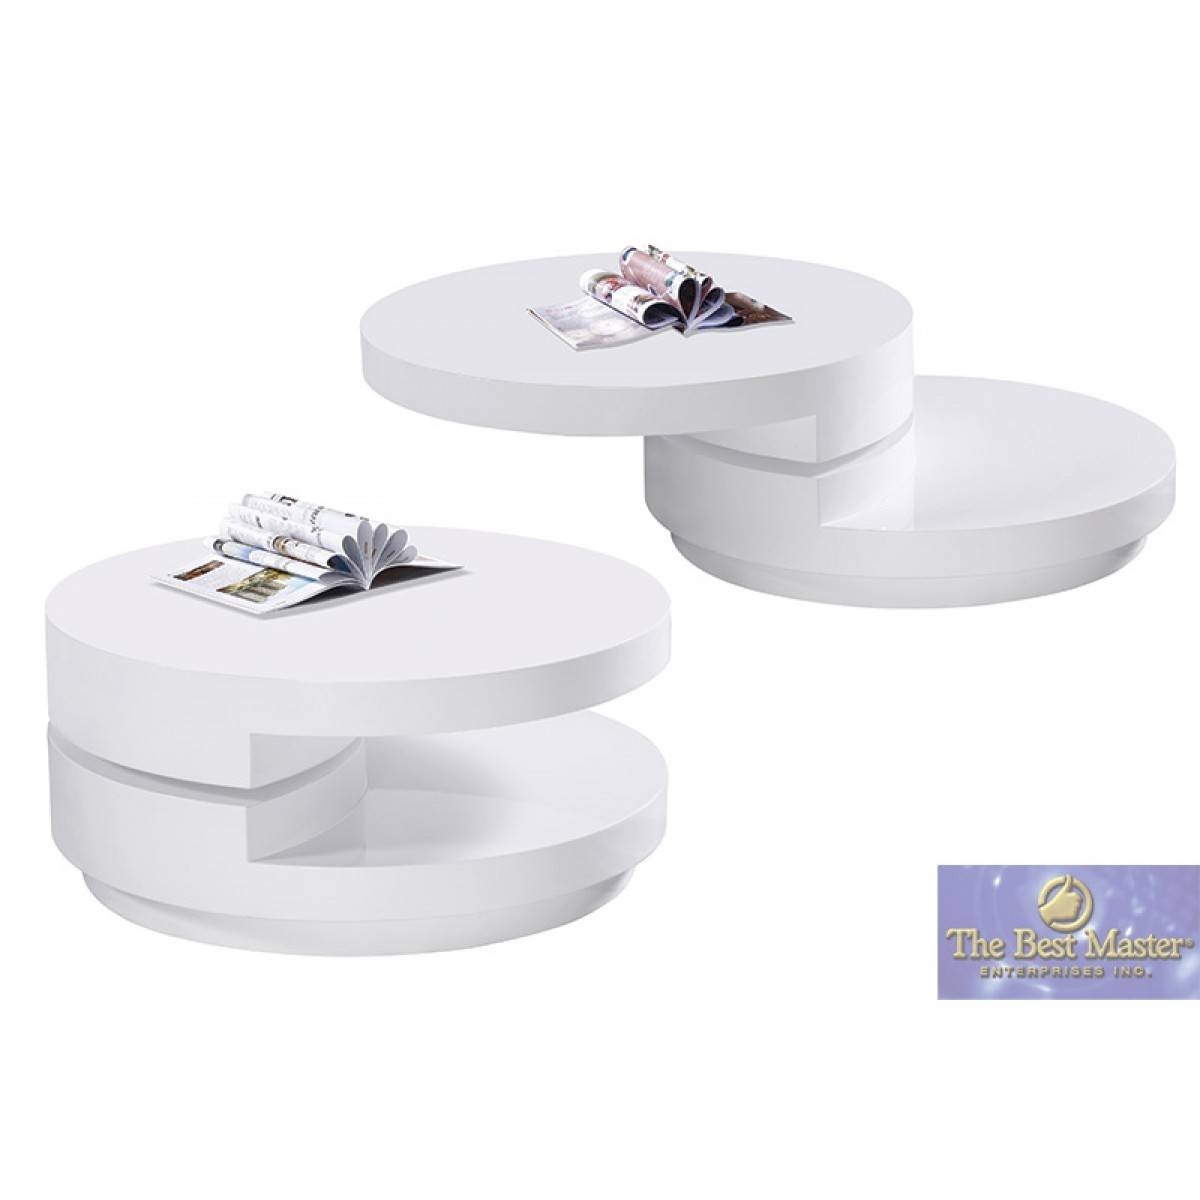 Swivel Round Coffee Table In White Lacquerbest Master   Tr-10 throughout Round Swivel Coffee Tables (Image 25 of 30)